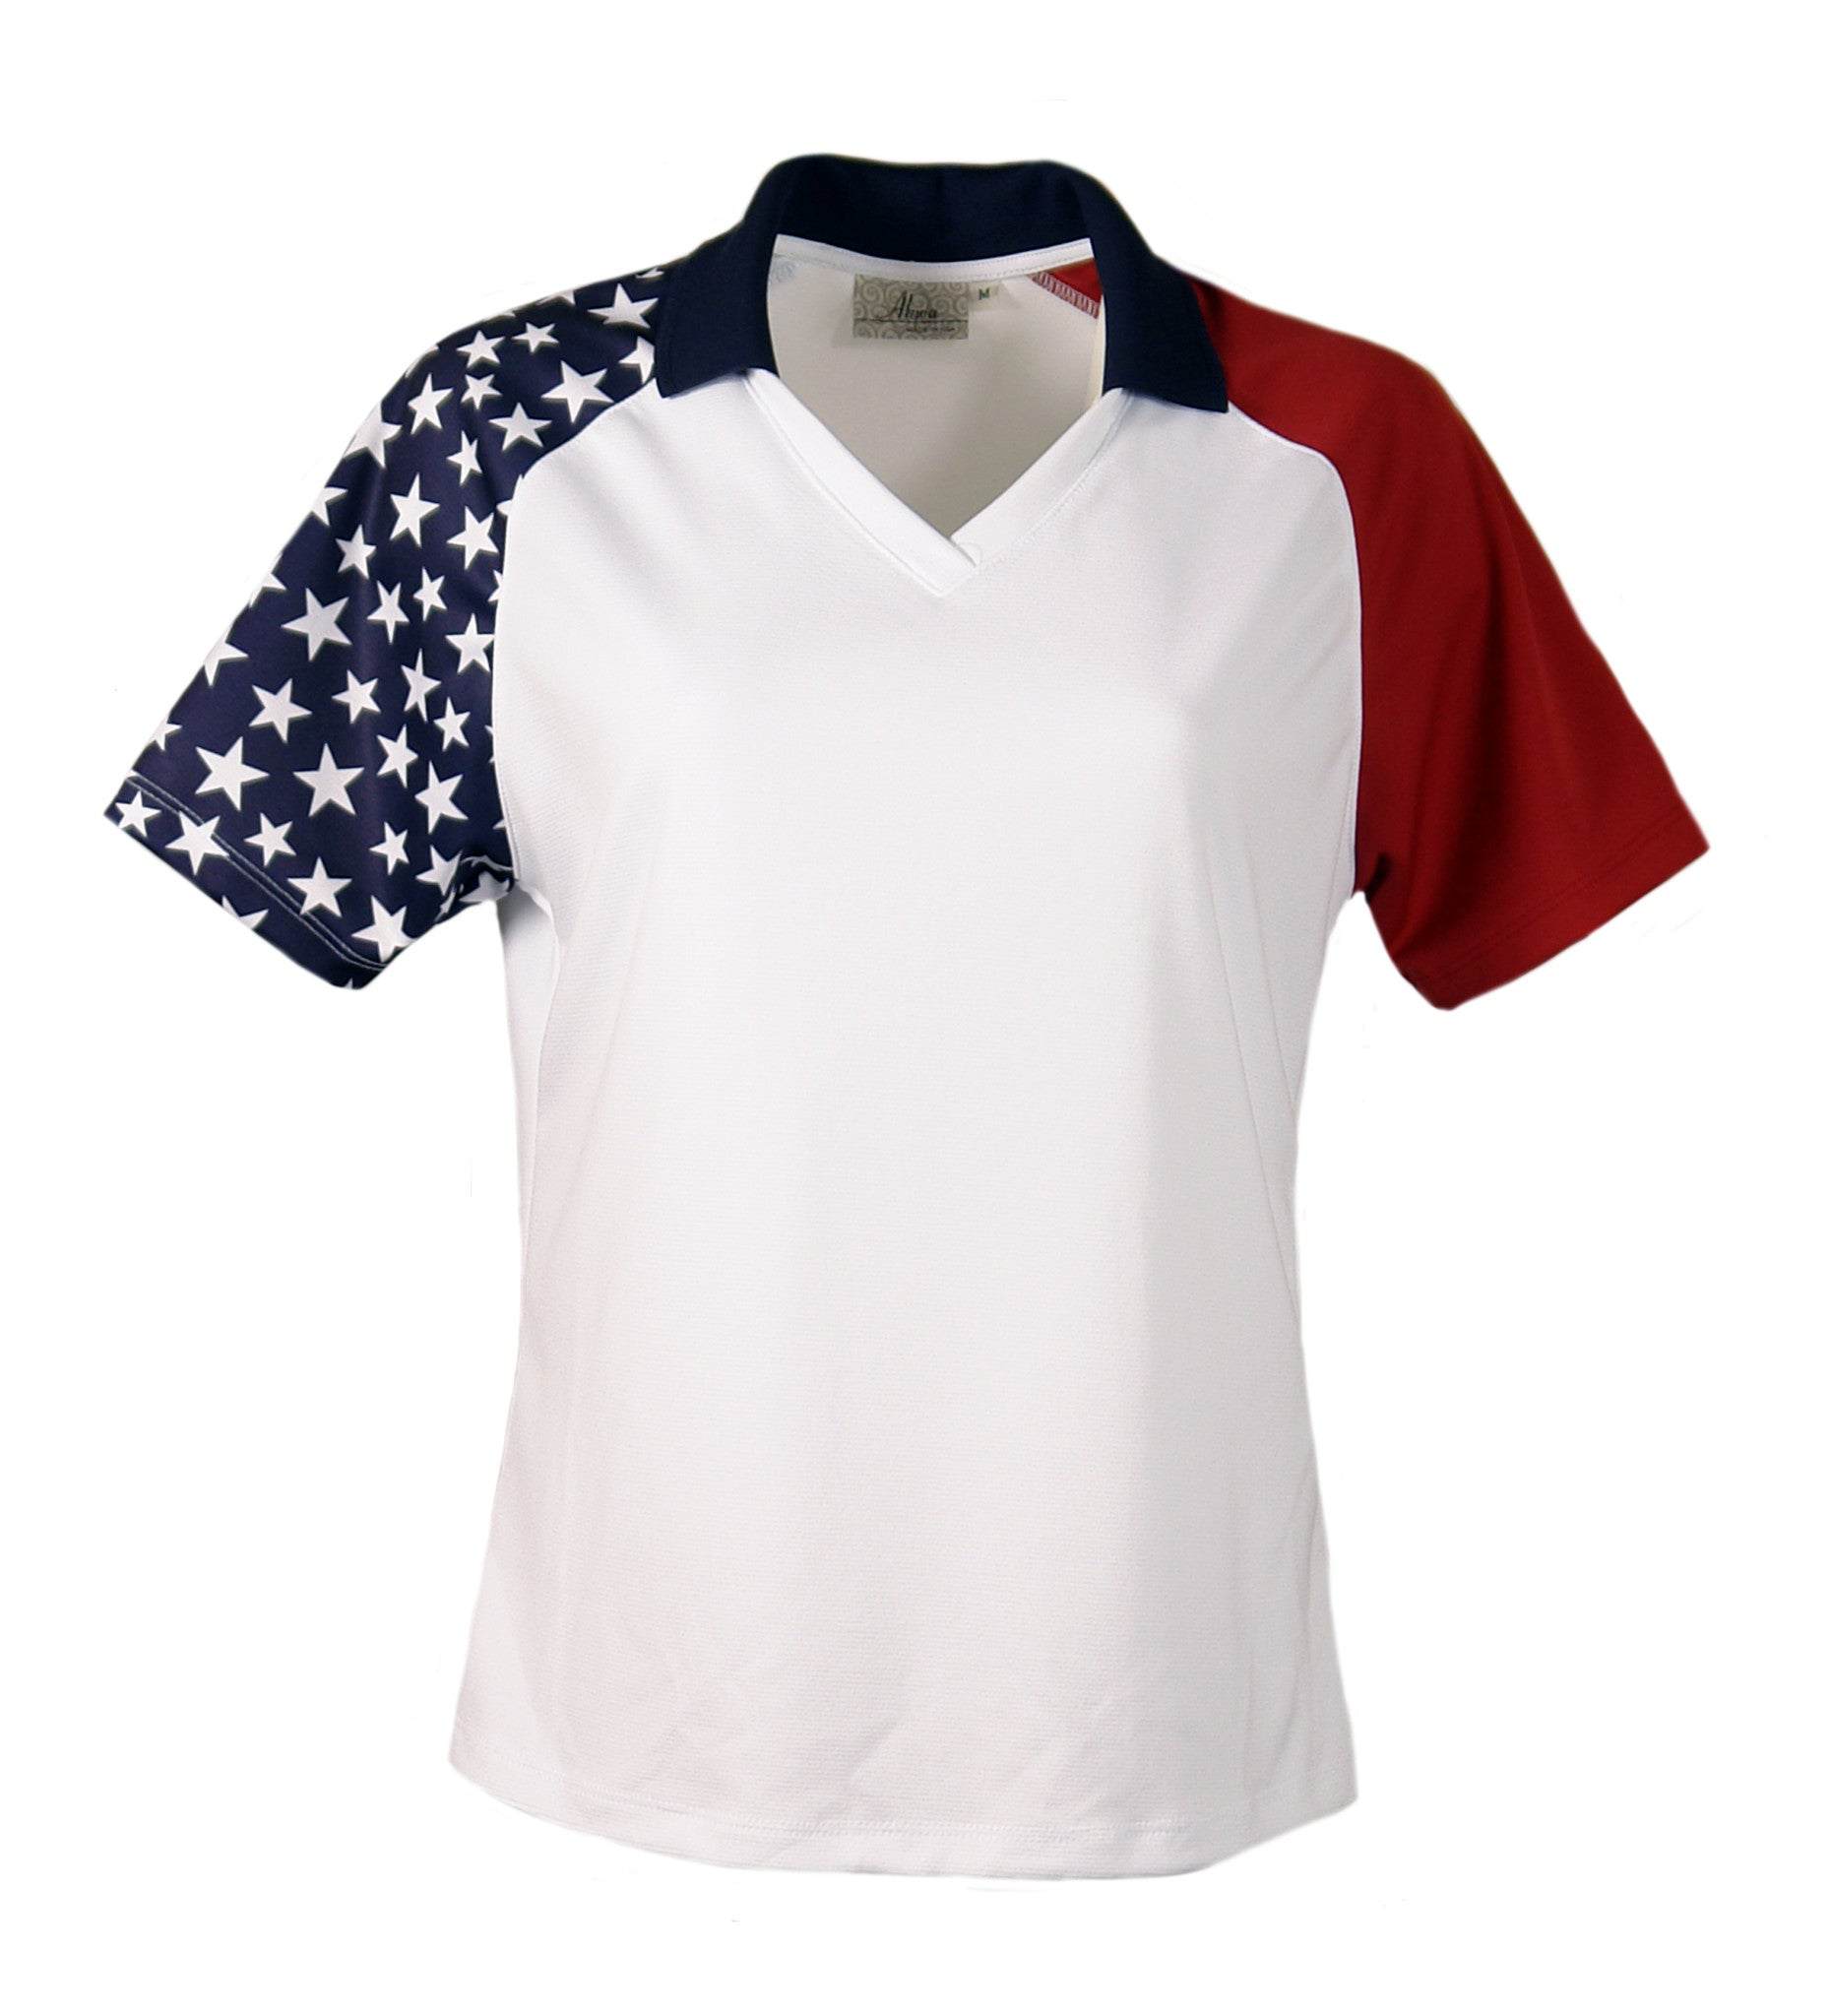 Ladies' Patriotic Polo - AKWA - Graphic Comfort